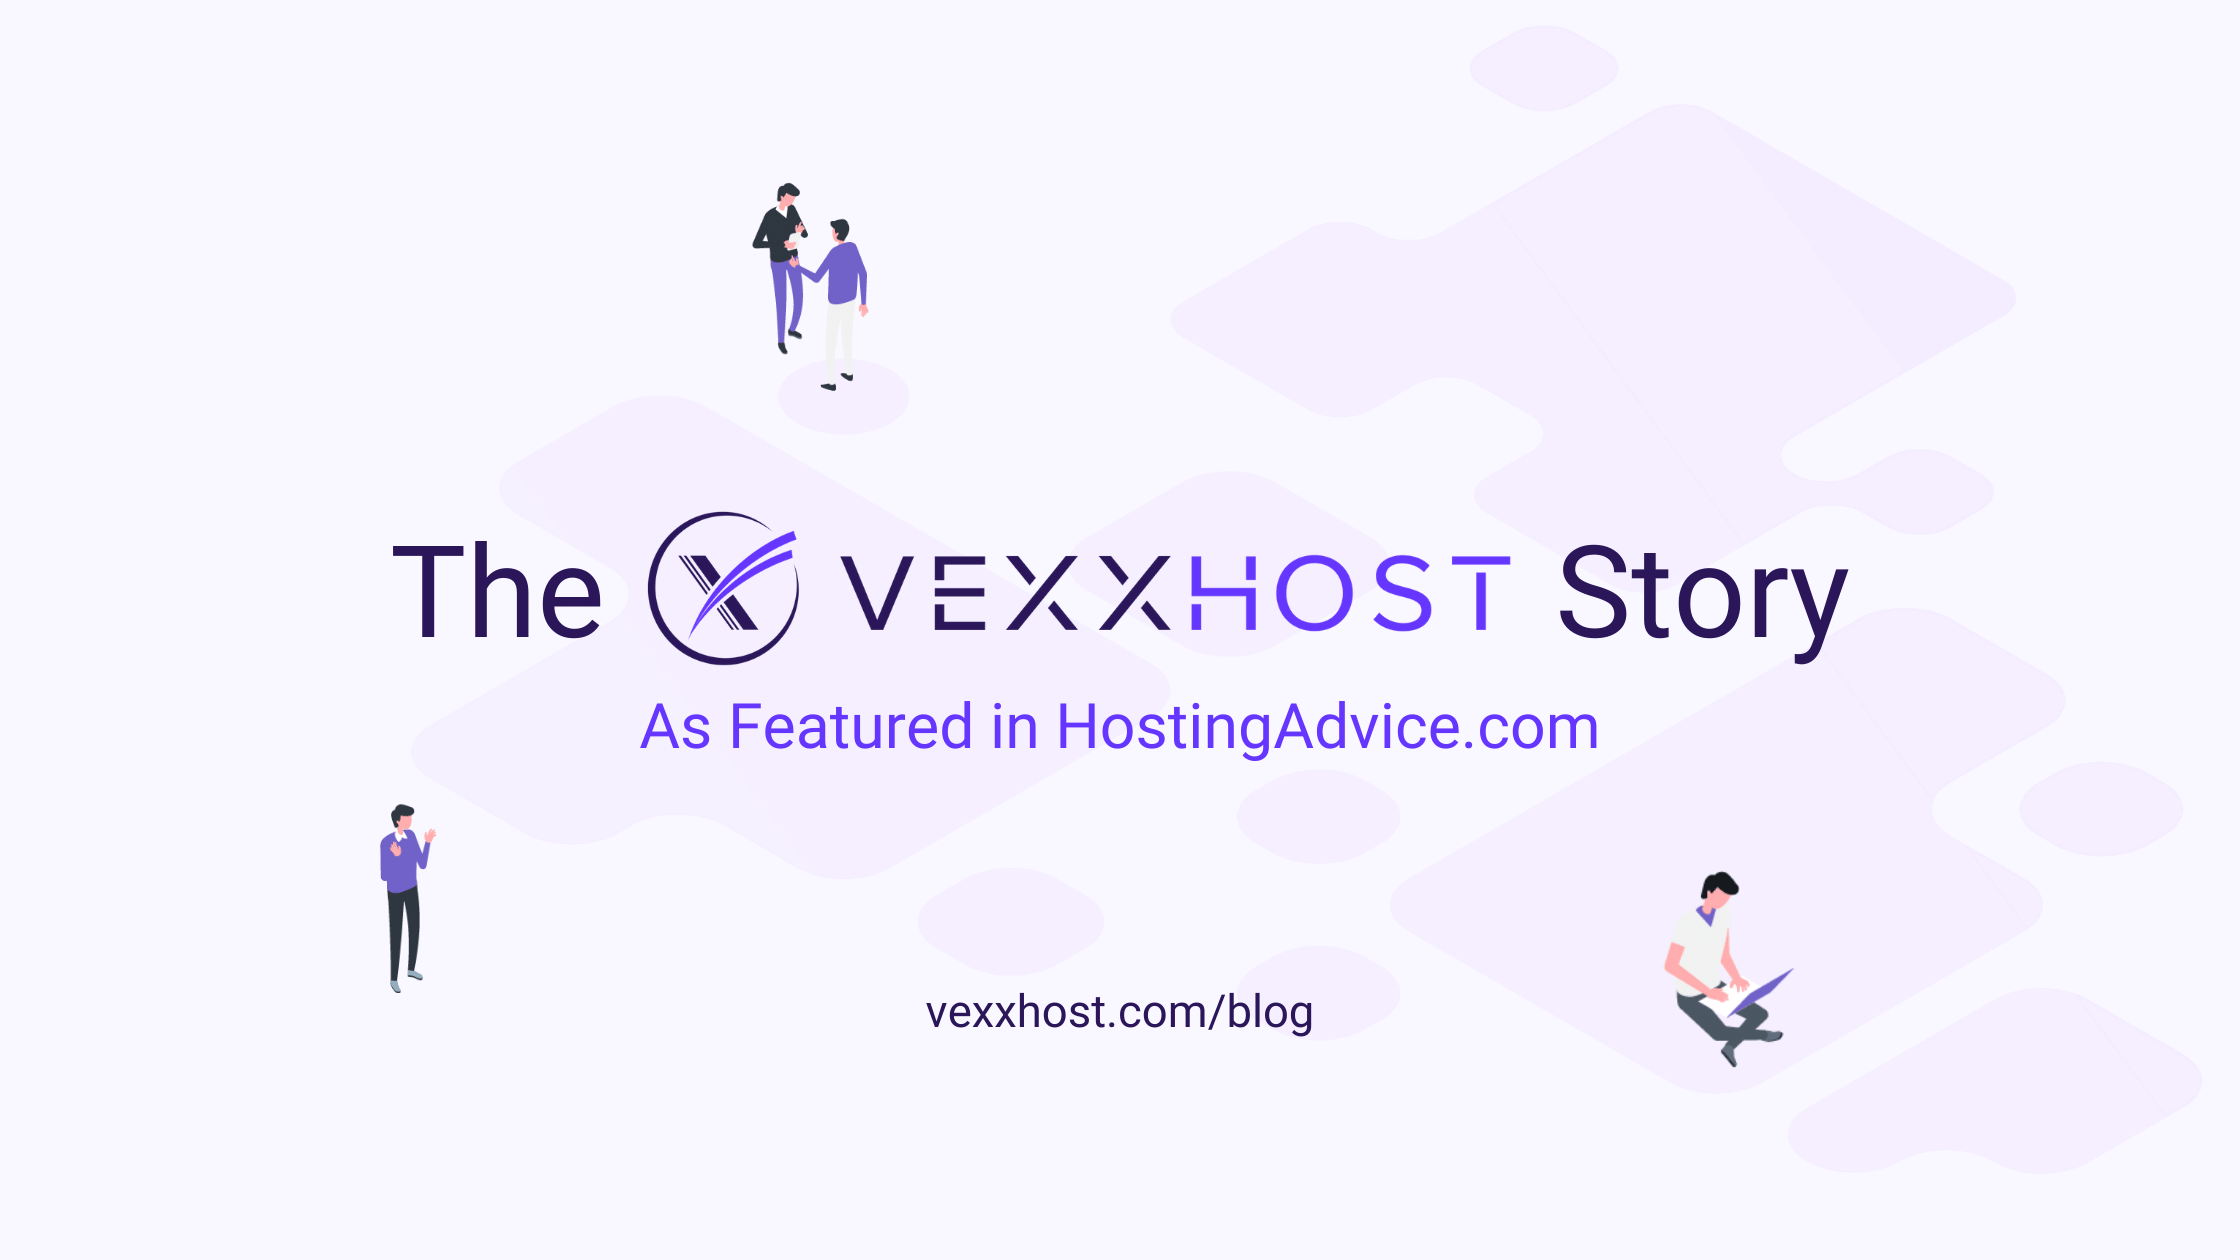 The-VEXXHOST-Story-as-Featured-in-HostingAdvice.com